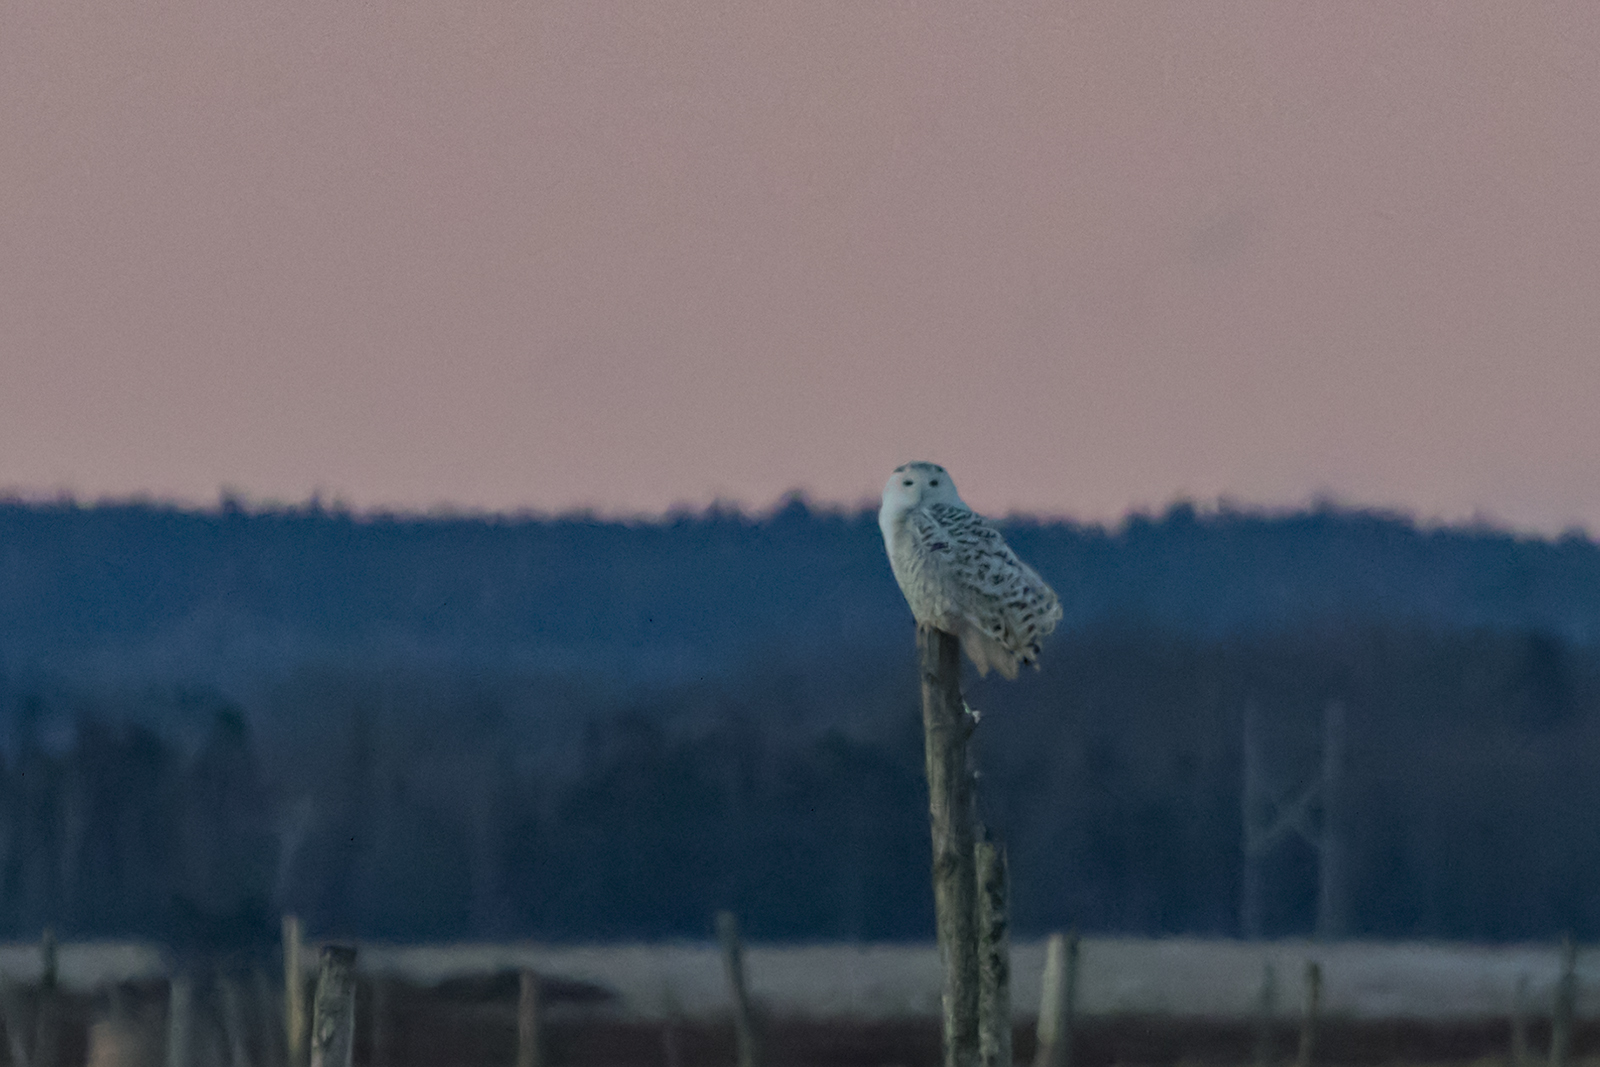 Canon 7D mk II, Canon 100-400mm @ 400mm, 1/800 sec, f/8 and ISO 3200